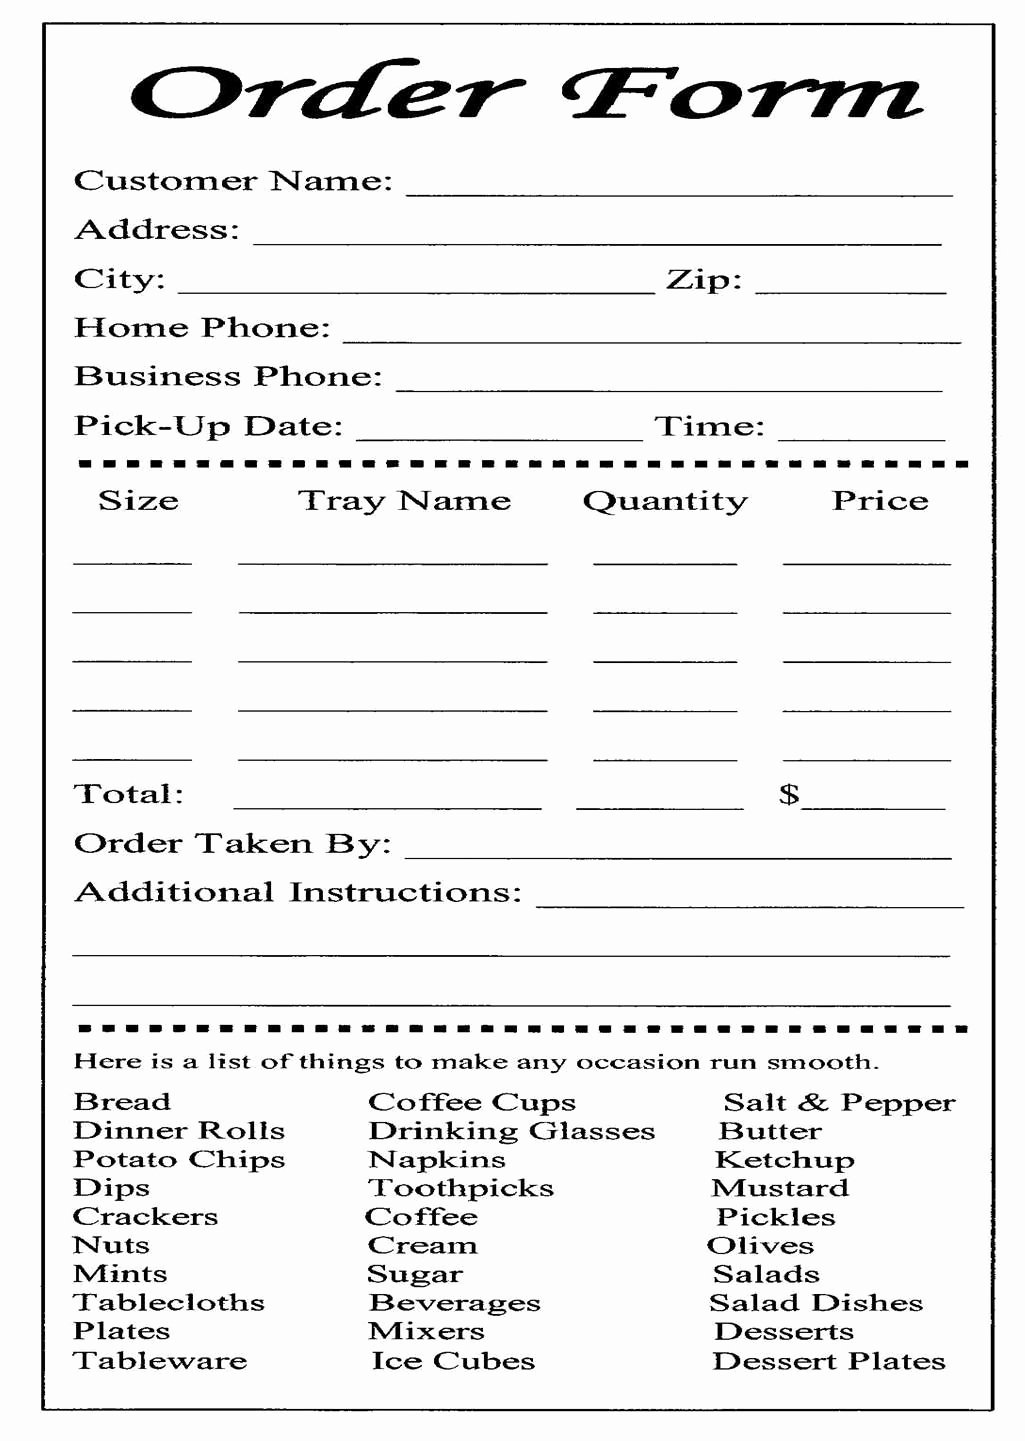 Catering order form Template Word Luxury Cake Ball order form Templates Free